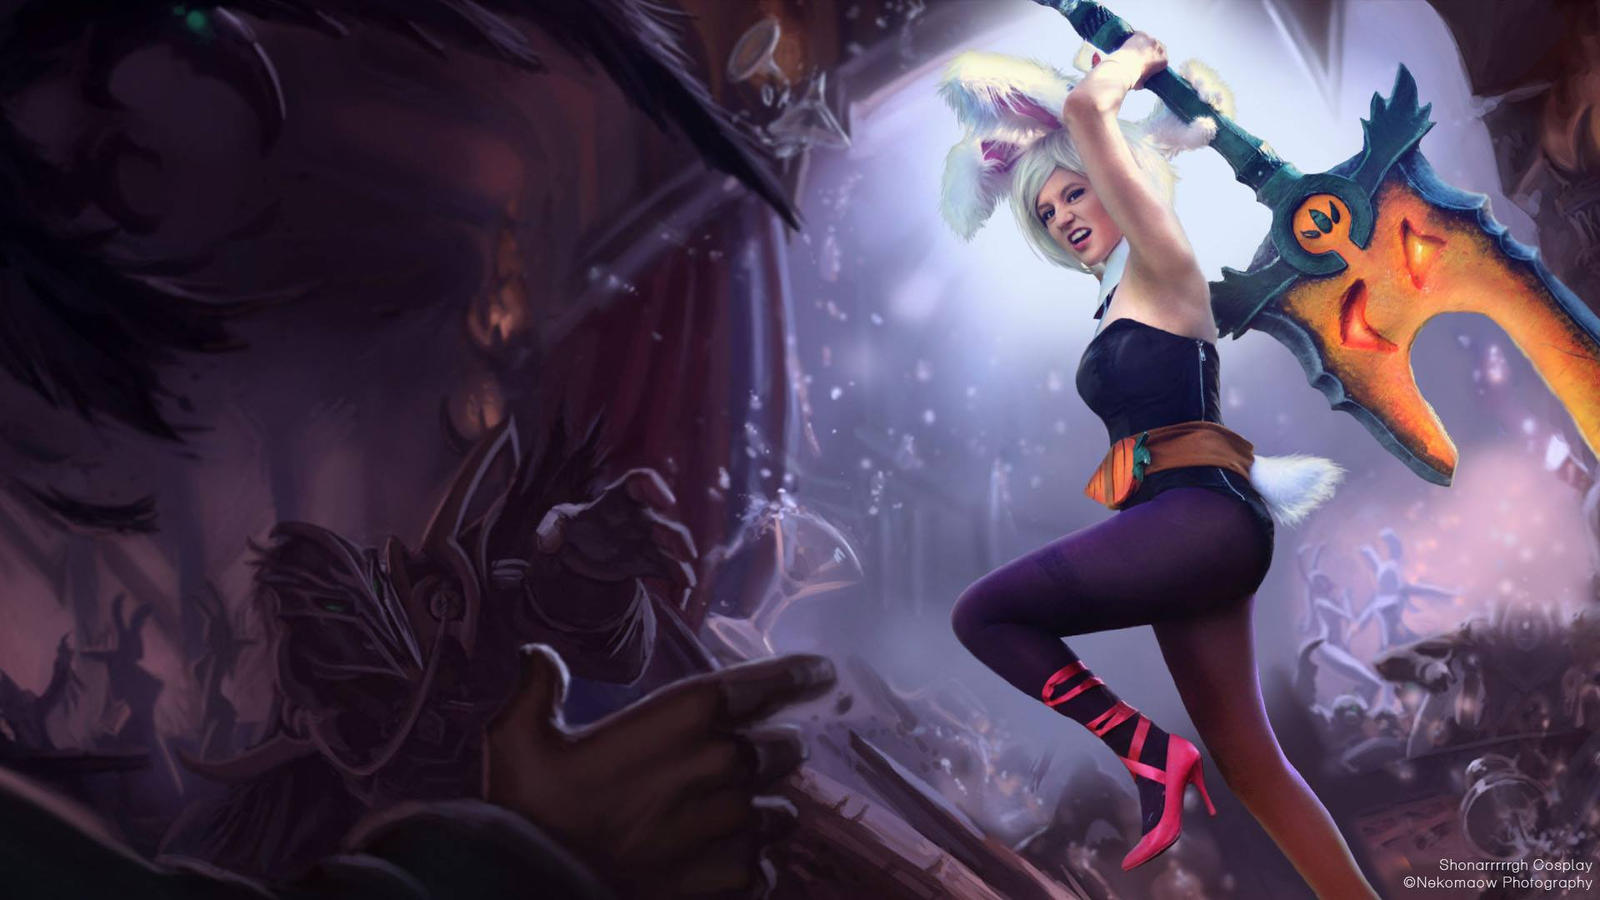 Riven battle bunny in game